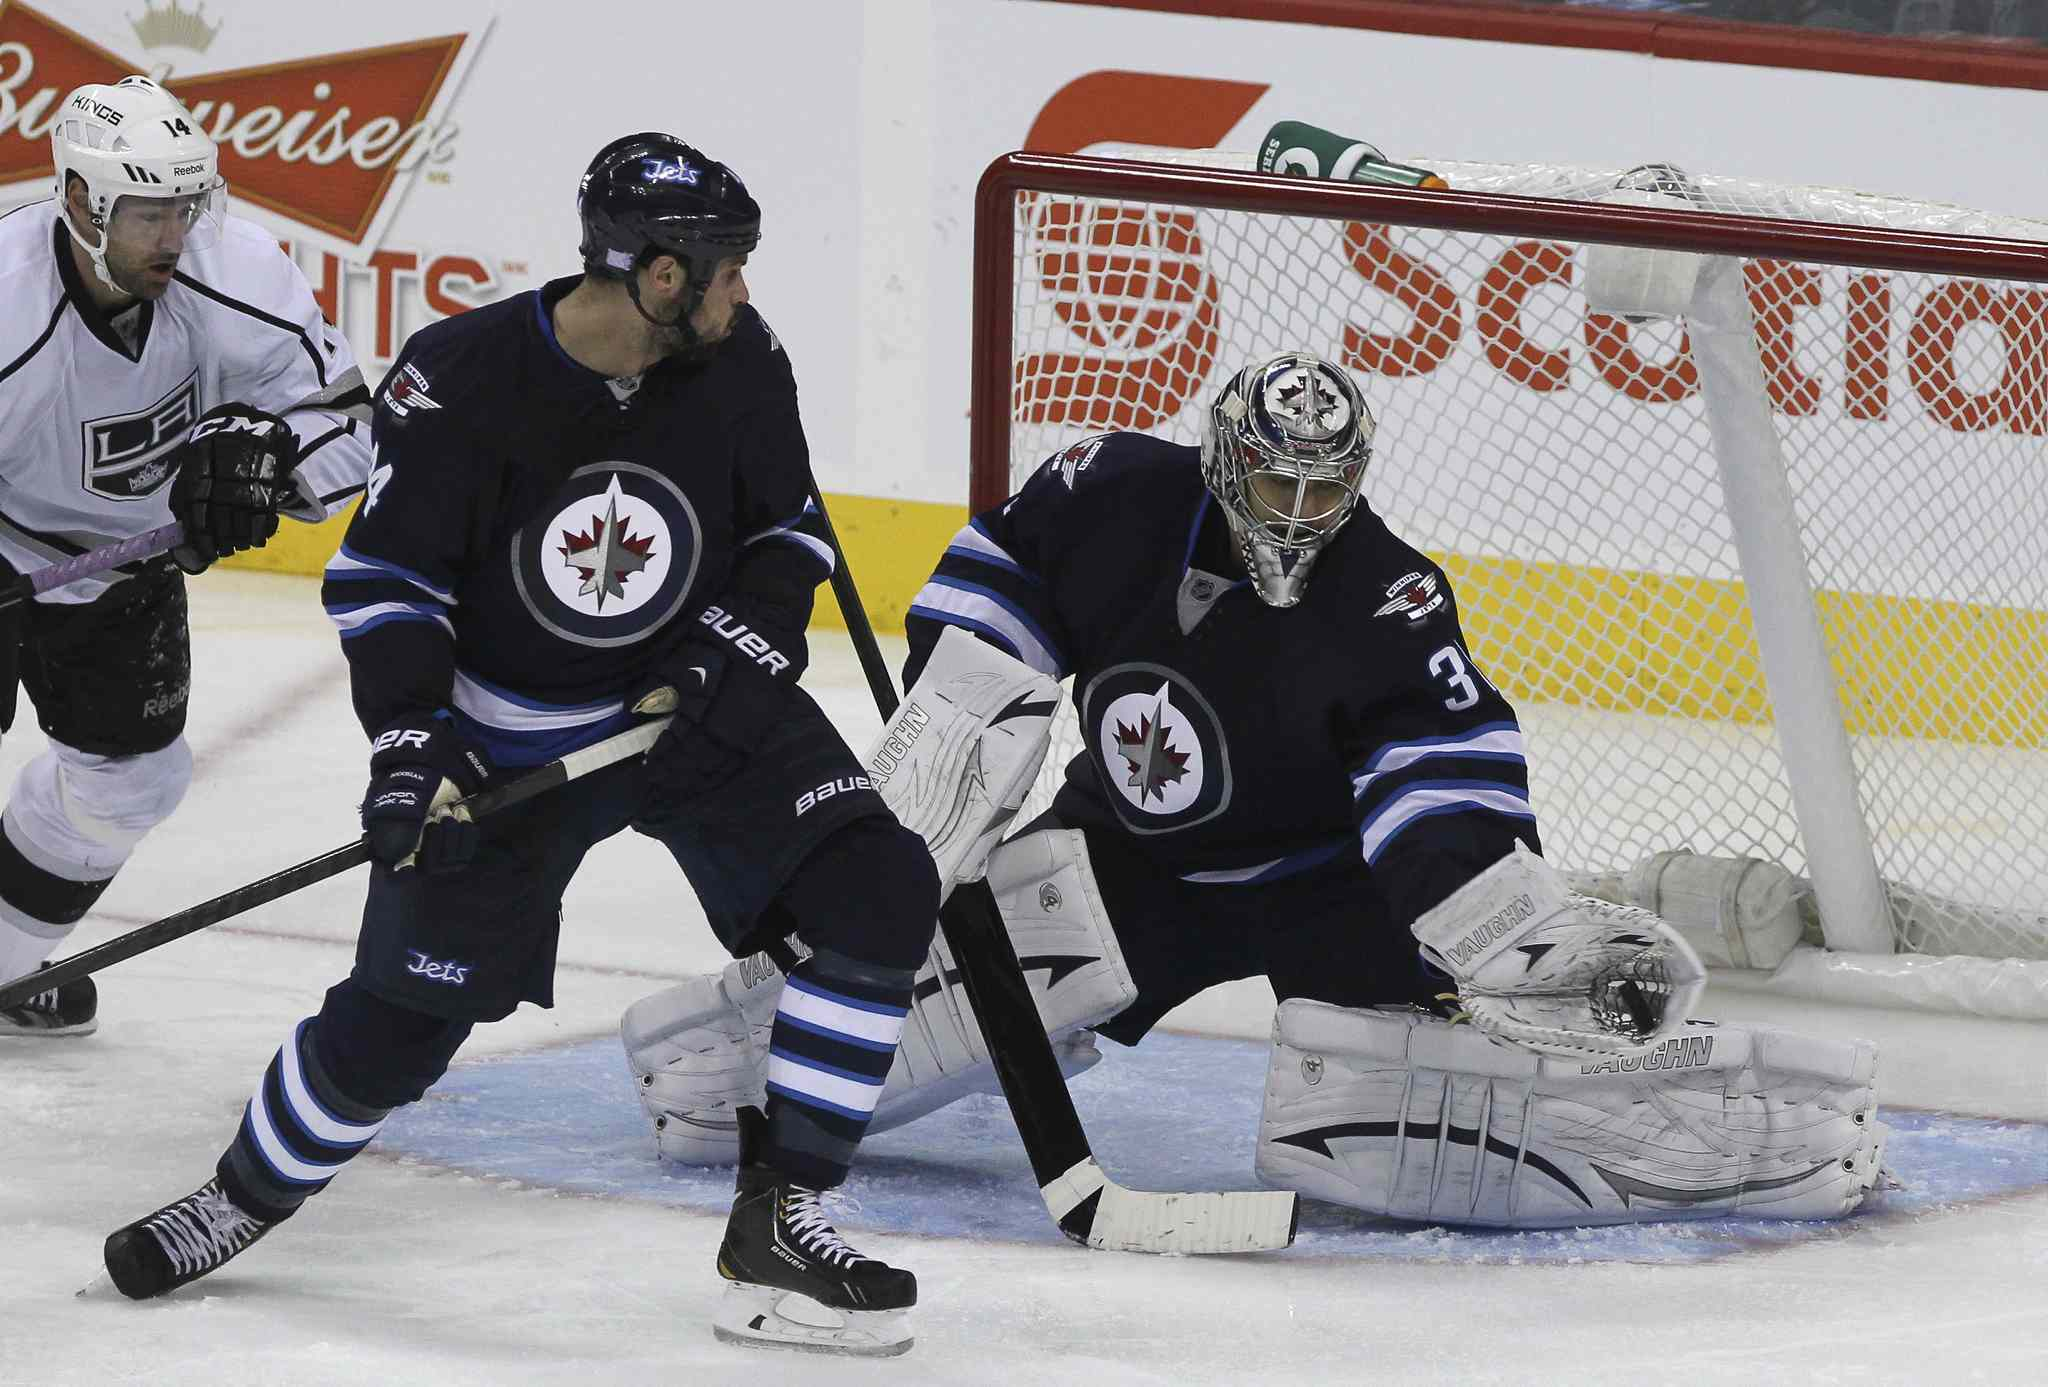 Winnipeg Jets' goaltender Ondrej Pavelec (31) makes a glove save in the third period.